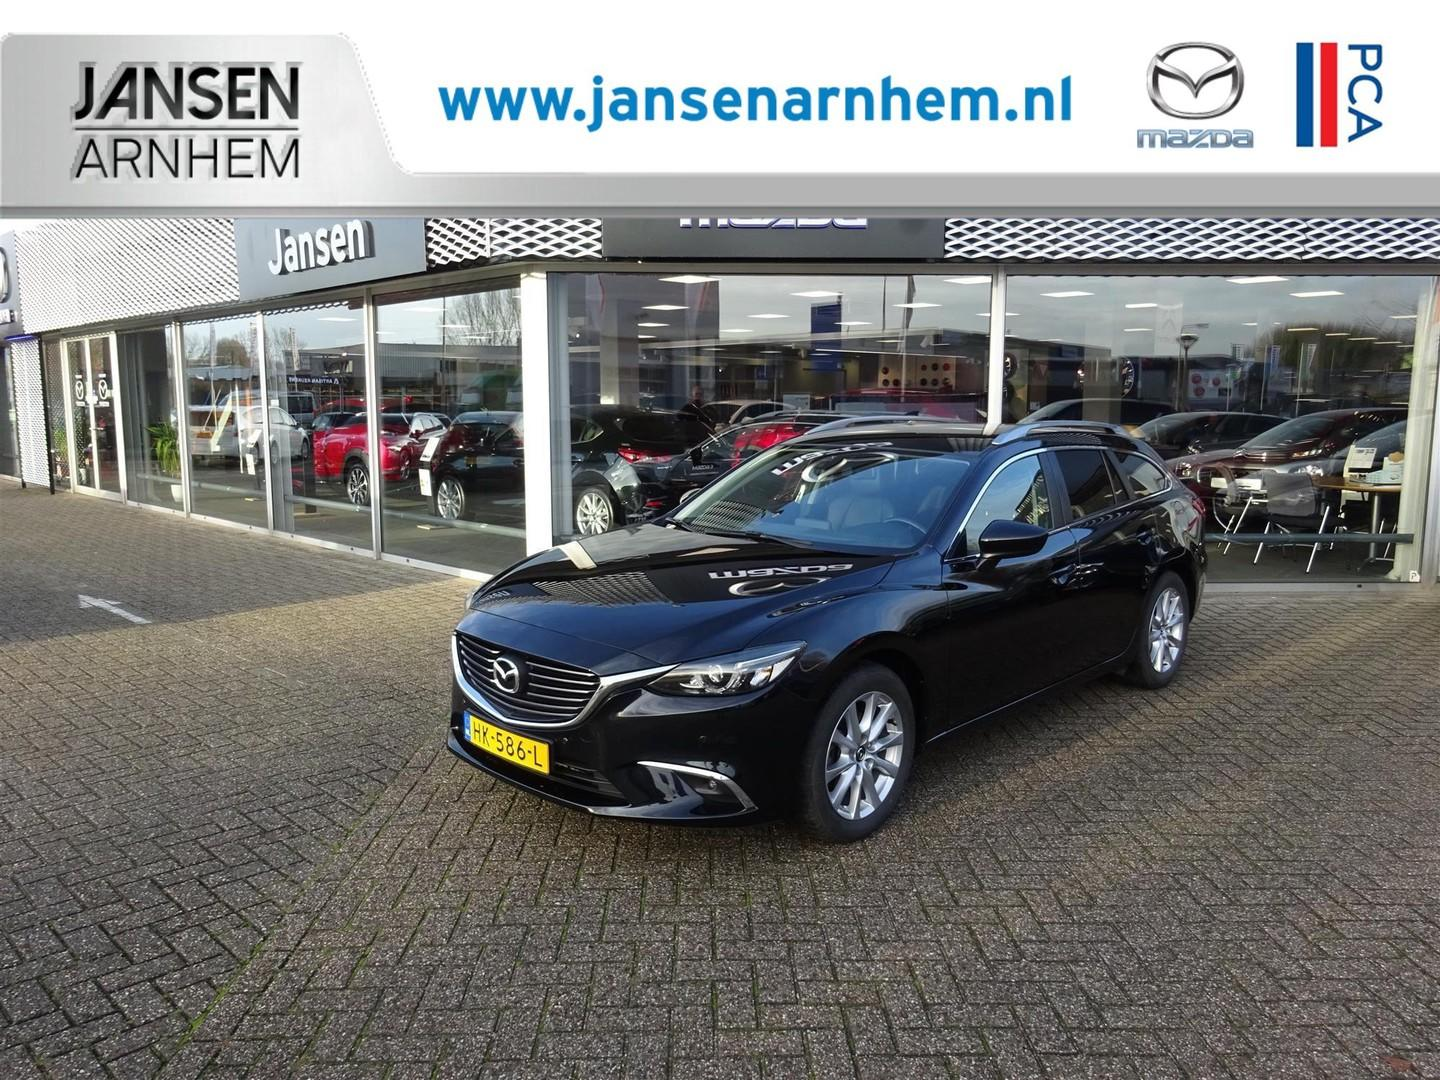 Mazda 6 Sportbreak 2.2d skyactiv-d 150 skylease gt , jansen private lease € 750,- p/mnd!